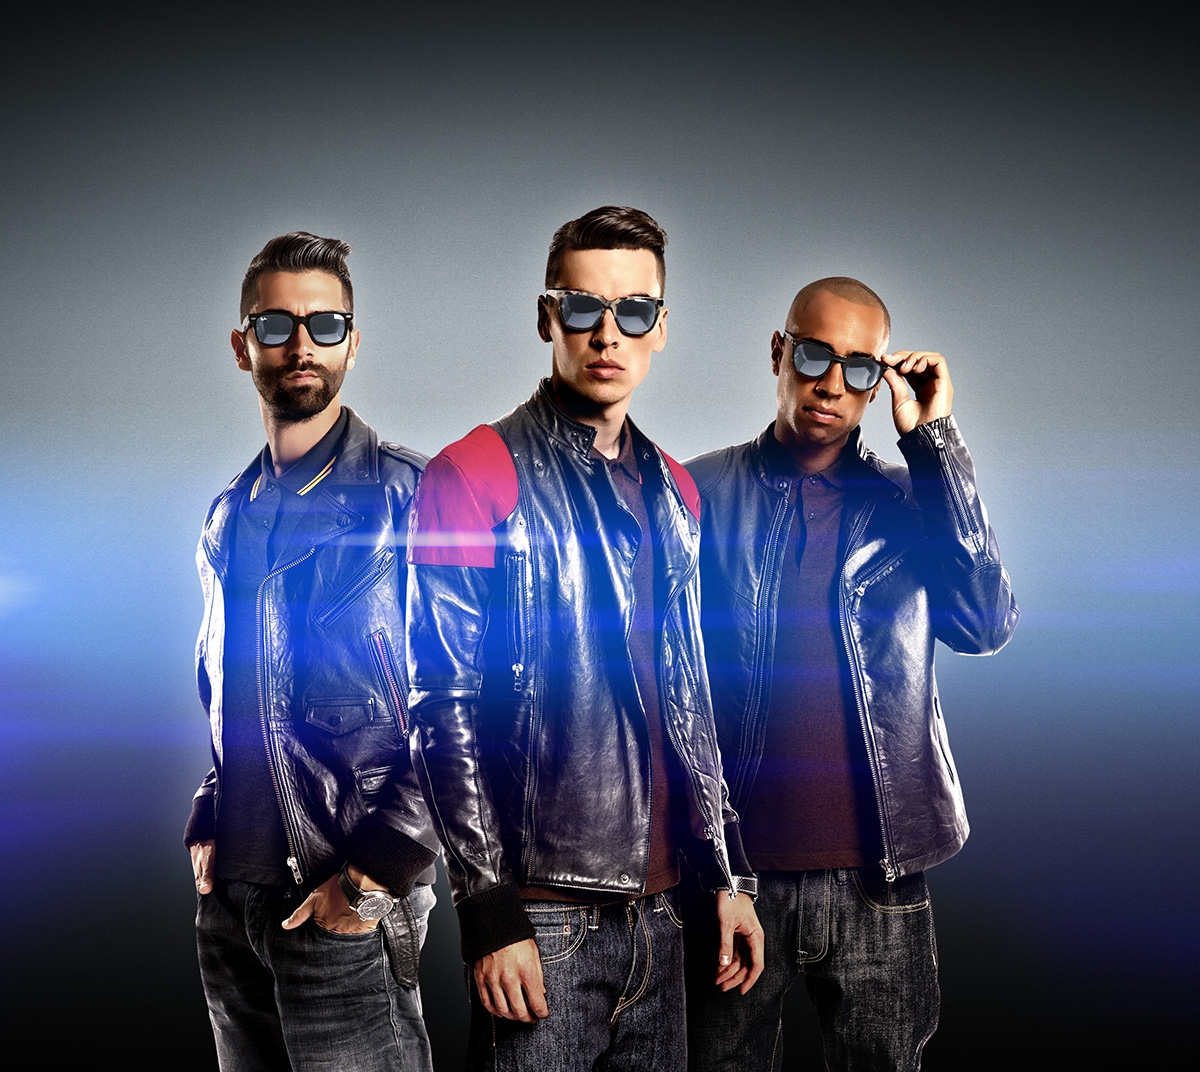 Yellow Claw Live 538 Kingsday Breda 26 04 2014